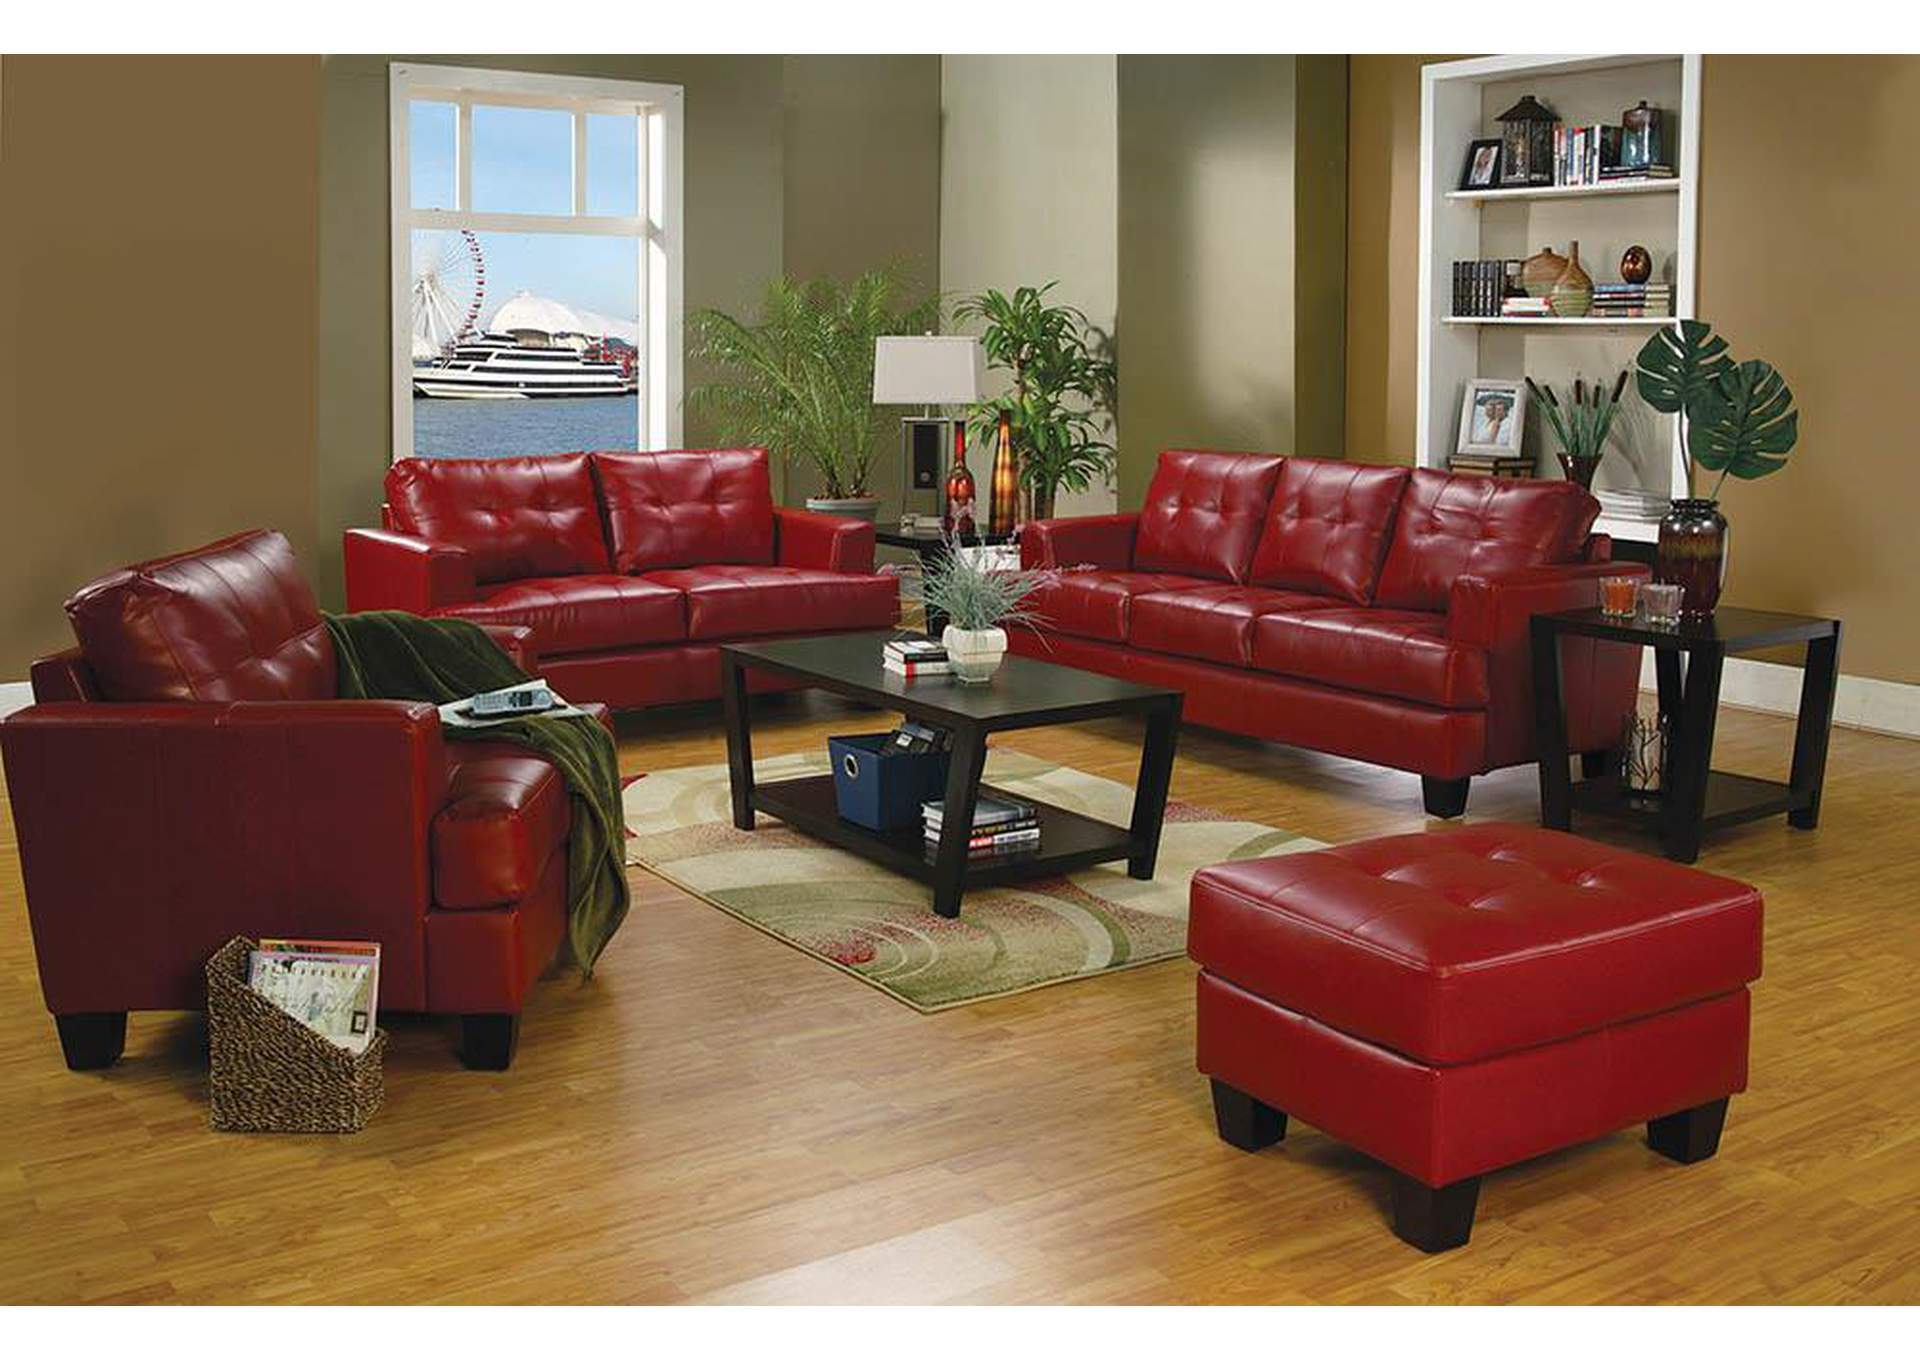 Samuel Red Bonded Leather Chair,Coaster Furniture